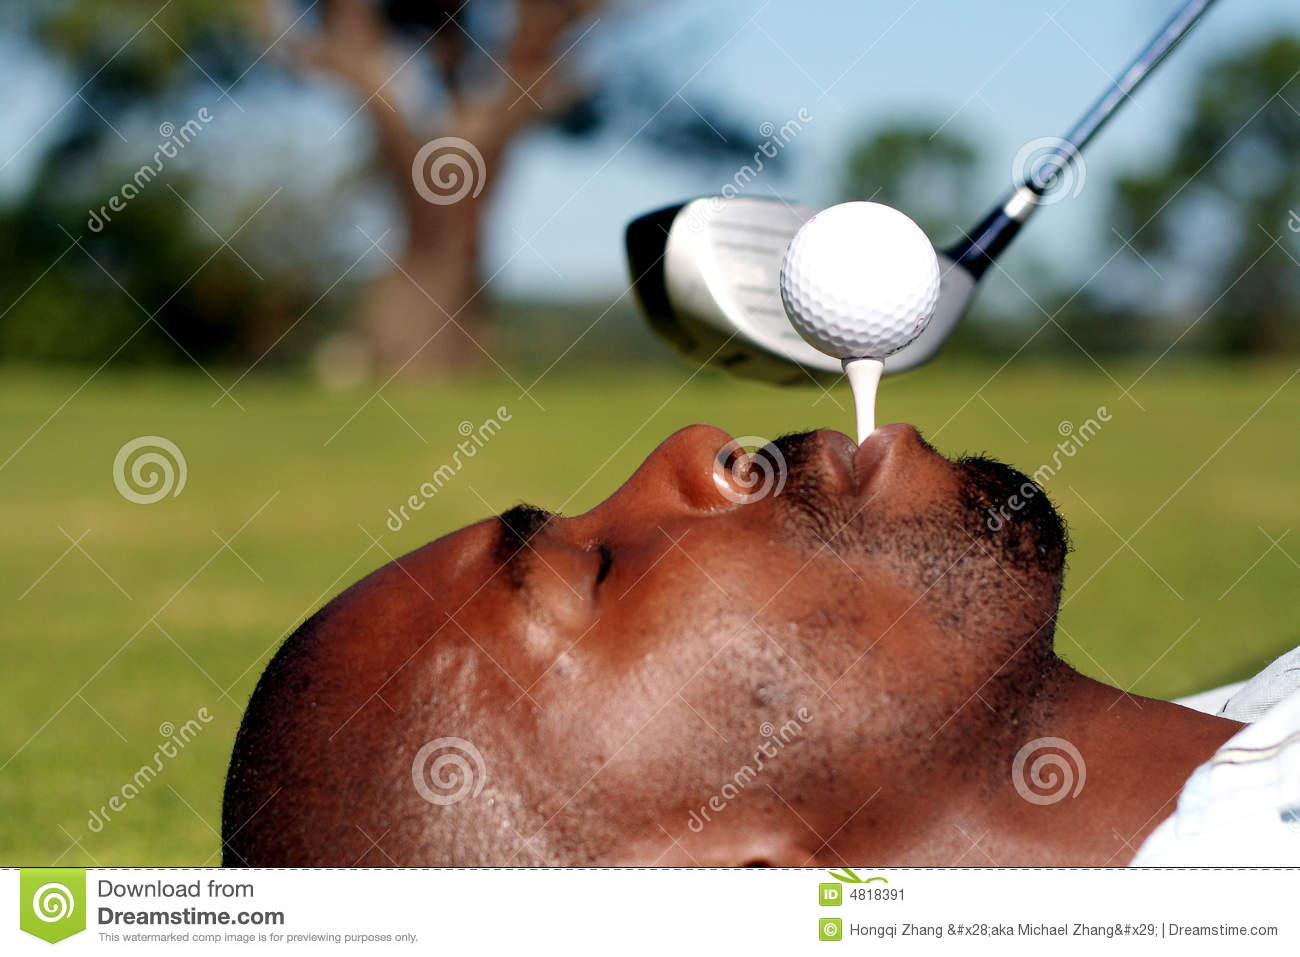 Funny Golf Stock Image - Image: 4818391 Golf Ball On Tee Clipart